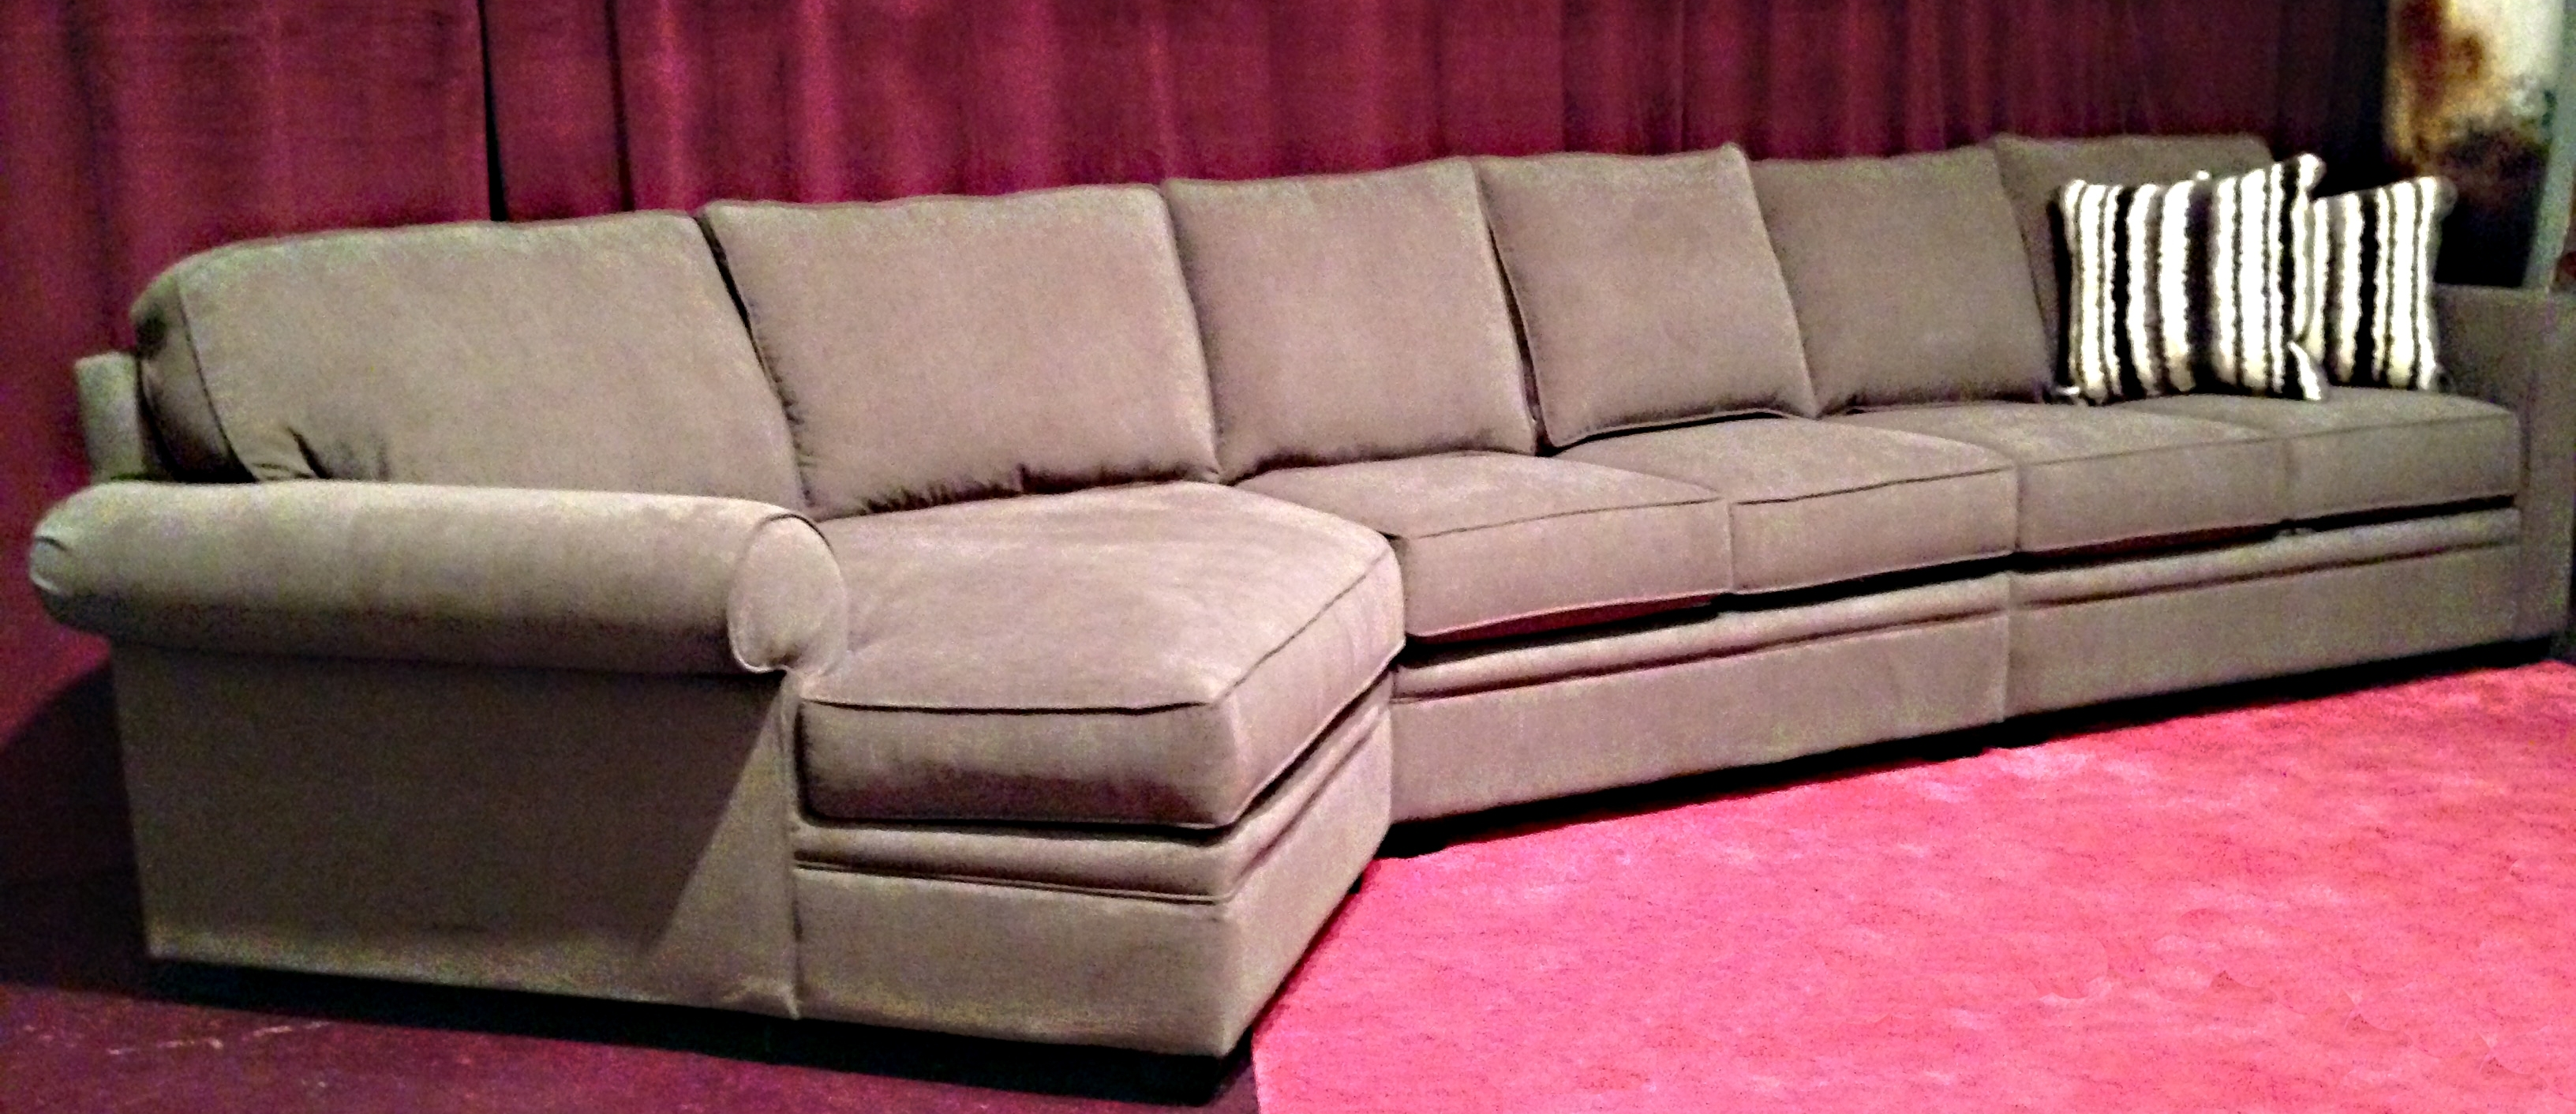 Wonderful Long Sectional Sofas 50 On Used Sectional Sofas Sale With throughout Used Sectional Sofas (Image 10 of 10)